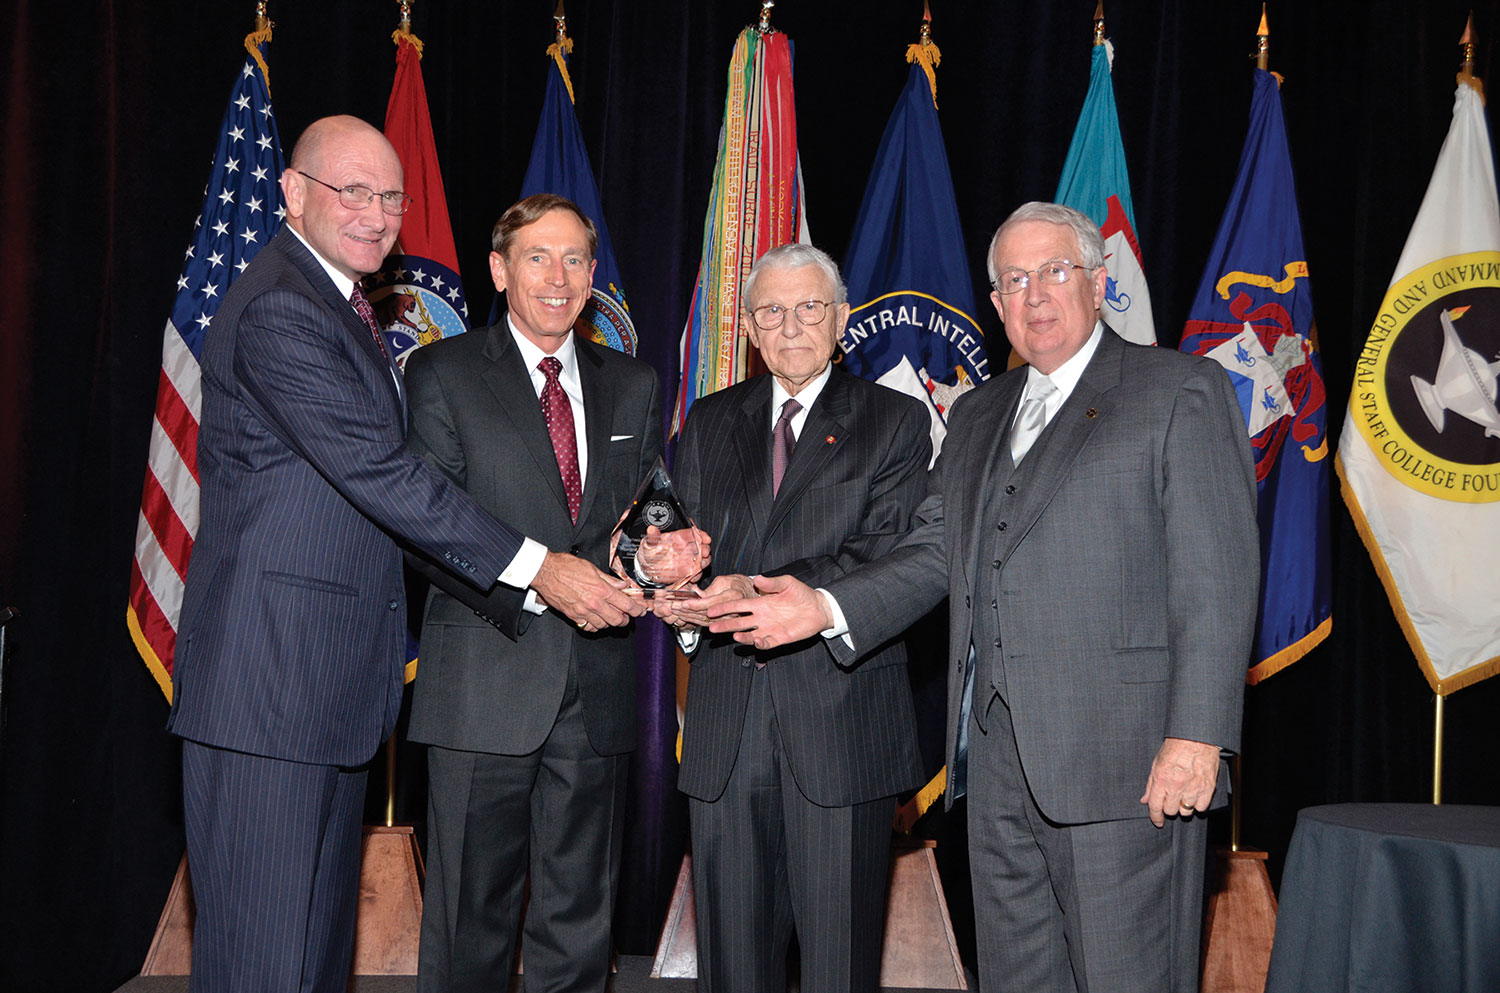 David H. Petraeus, retired Army General and current Director of the Central Intelligence Agency, is presented with the CGSC Foundation's 2012 Distinguished Leadership Award from Foundation leadership at a dinner banquet May 10, in Kansas City, Mo. From left: Hyrum Smith, Foundation President; Petraeus; Lt. Gen. (Ret.) Robert Arter, Chairman; and Lt. Gen. (Ret.) John Miller, Vice Chairman. (Photo by Phillips Photography/Kansas City)